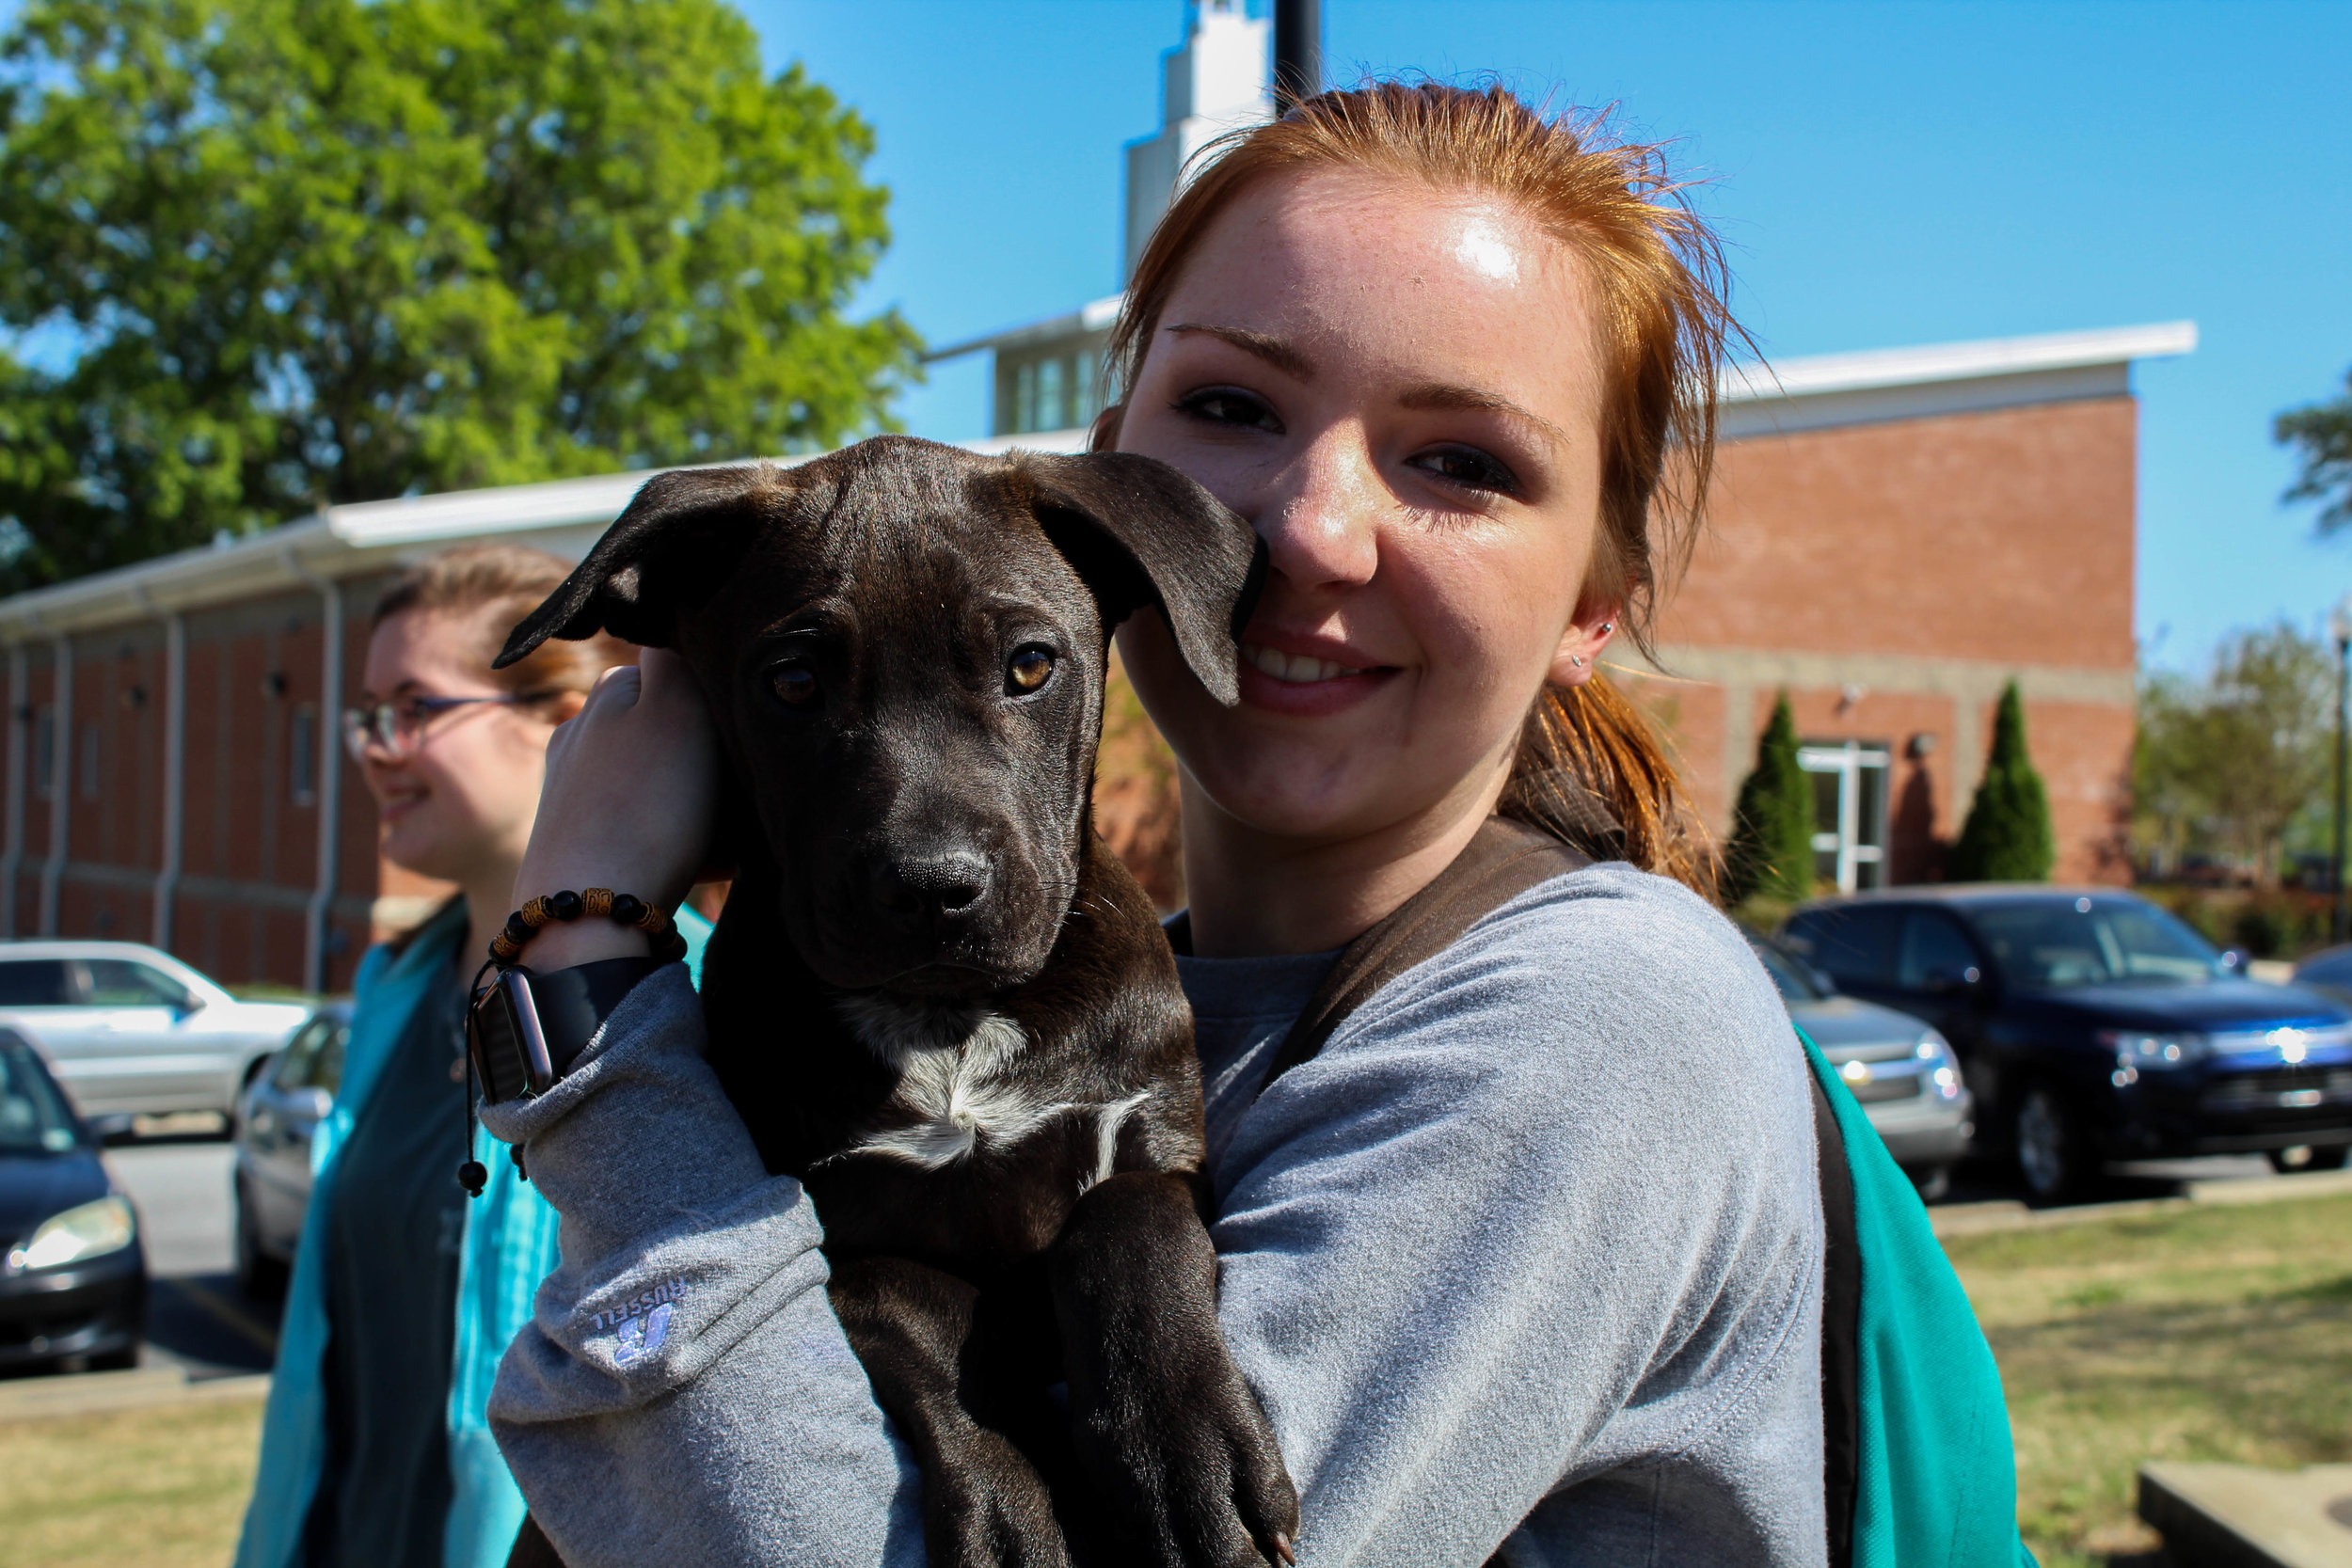 Annabrooke Heatherly, a member of the Animal Science Club, shows her love for animals as she holds one of the puppies.